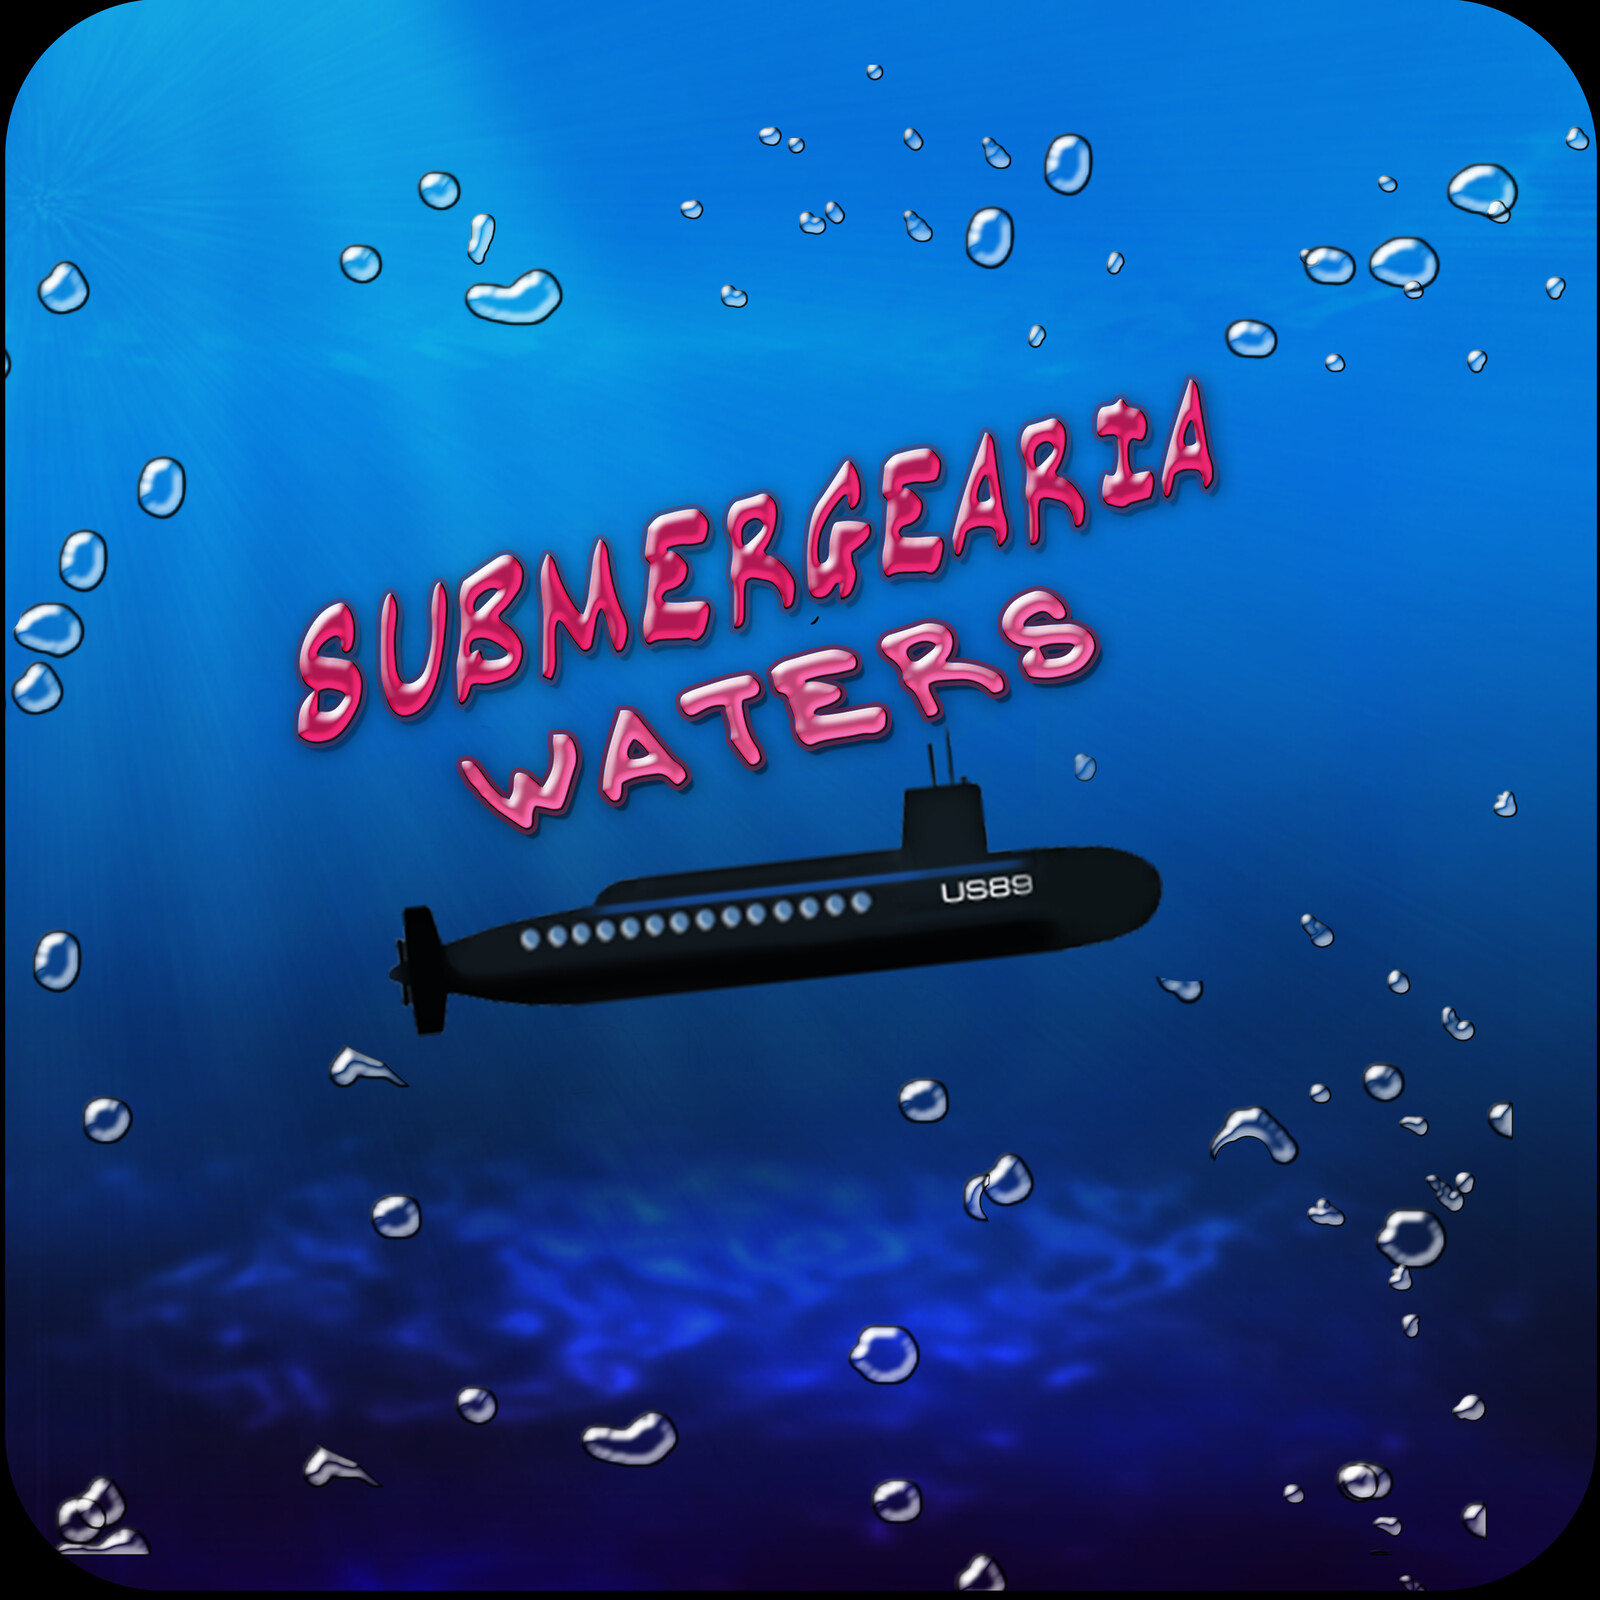 Submergearia Waters Mobile Game